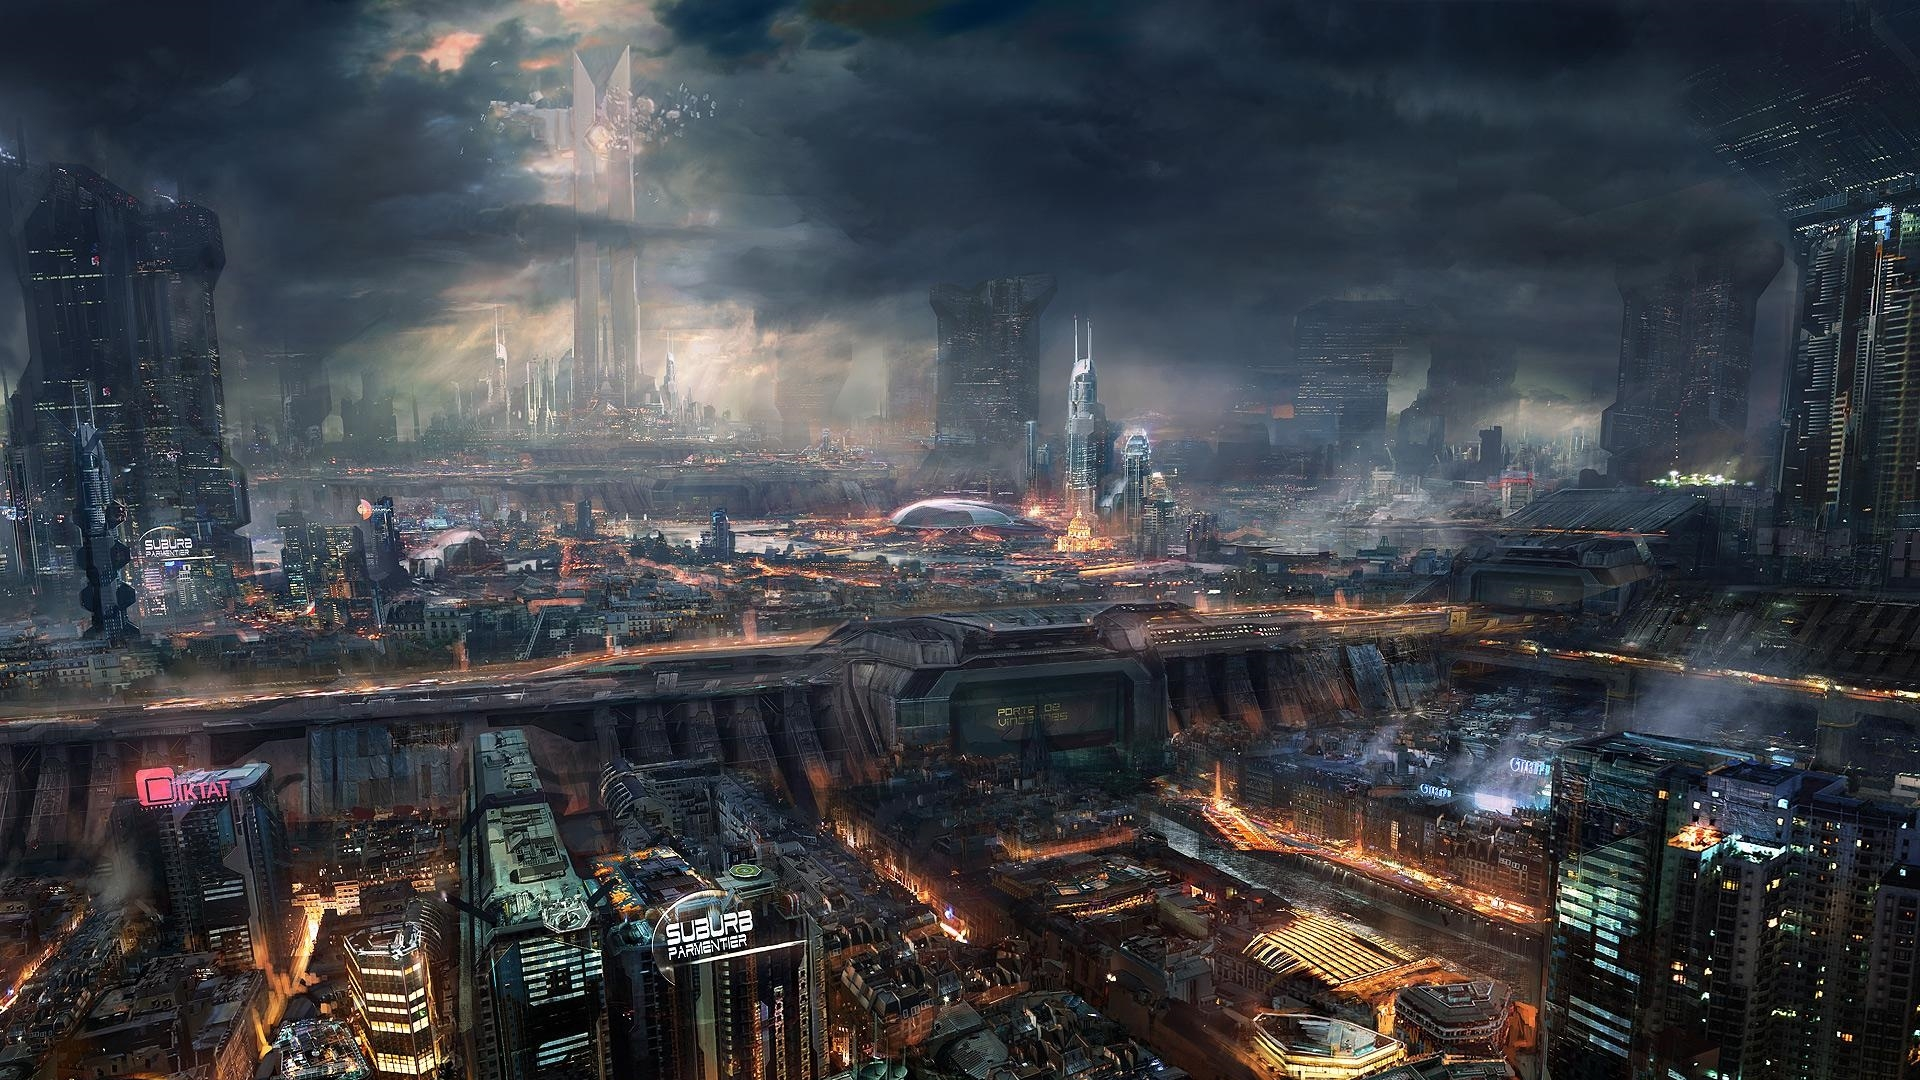 Free Download 50 Futuristic City Wallpapers 1920x1080 For Your Desktop Mobile Tablet Explore 75 City Wallpapers Black And White City Wallpaper New York City Wallpaper Hd City Wallpapers